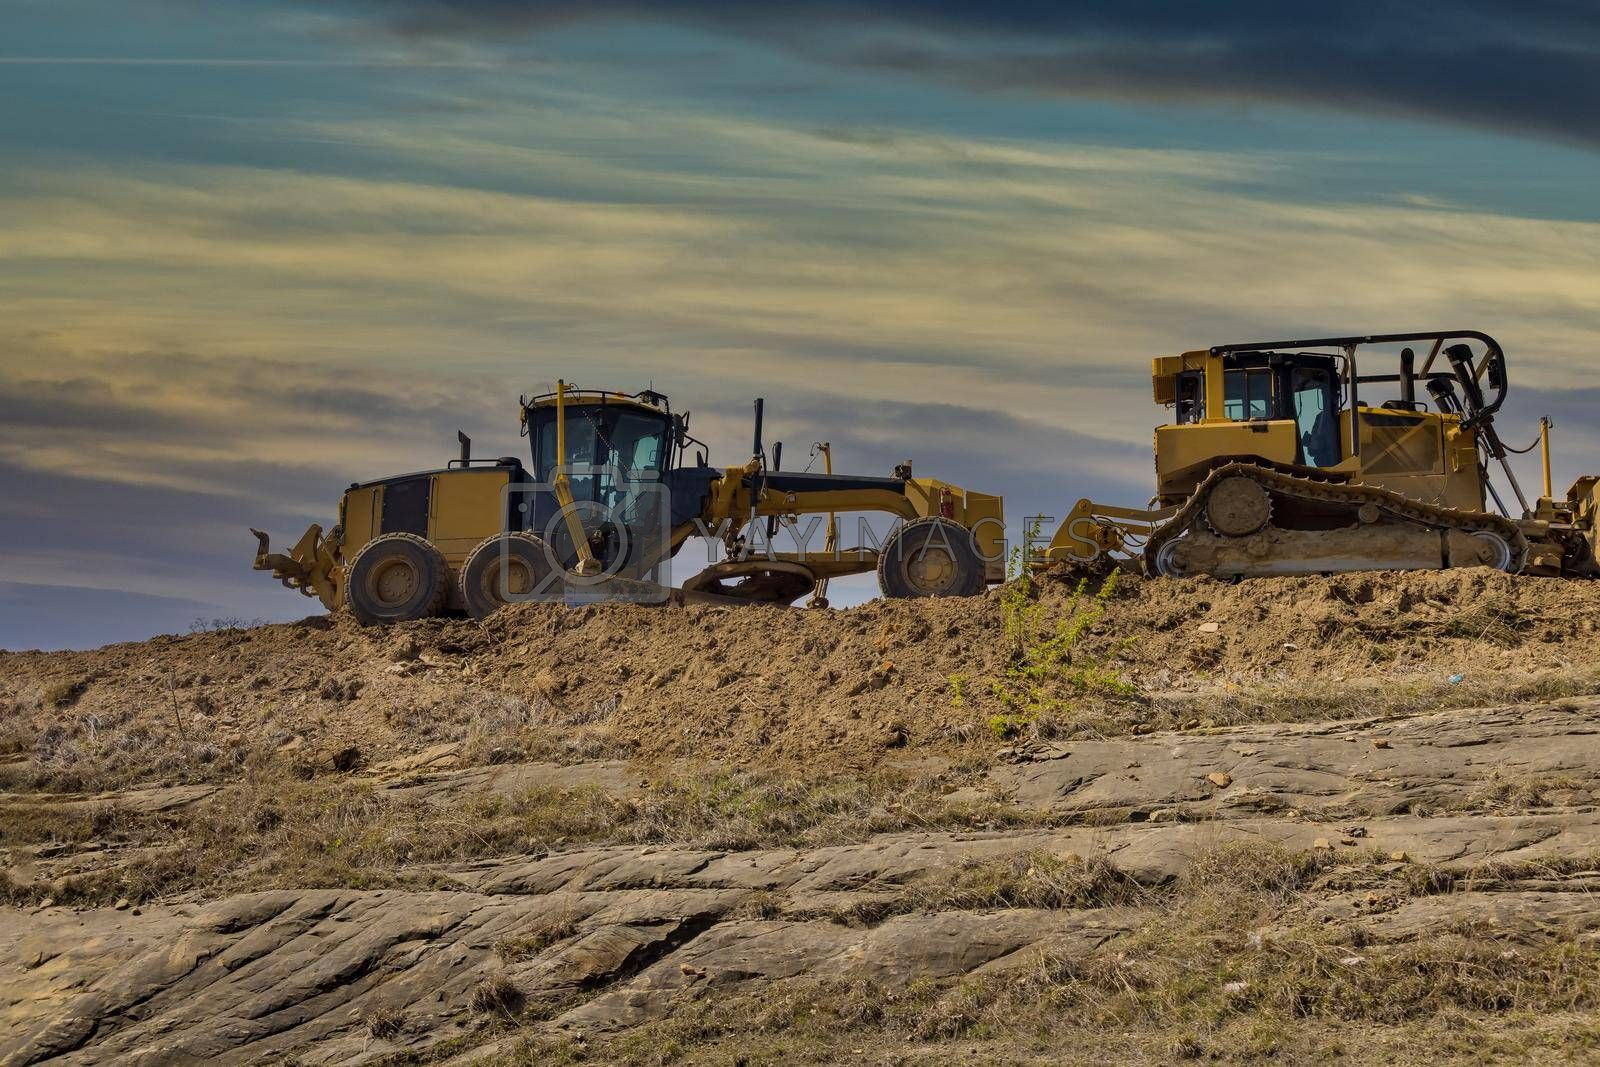 Under construction of a new asphalt road. The excavators, graders working on the new road construction site